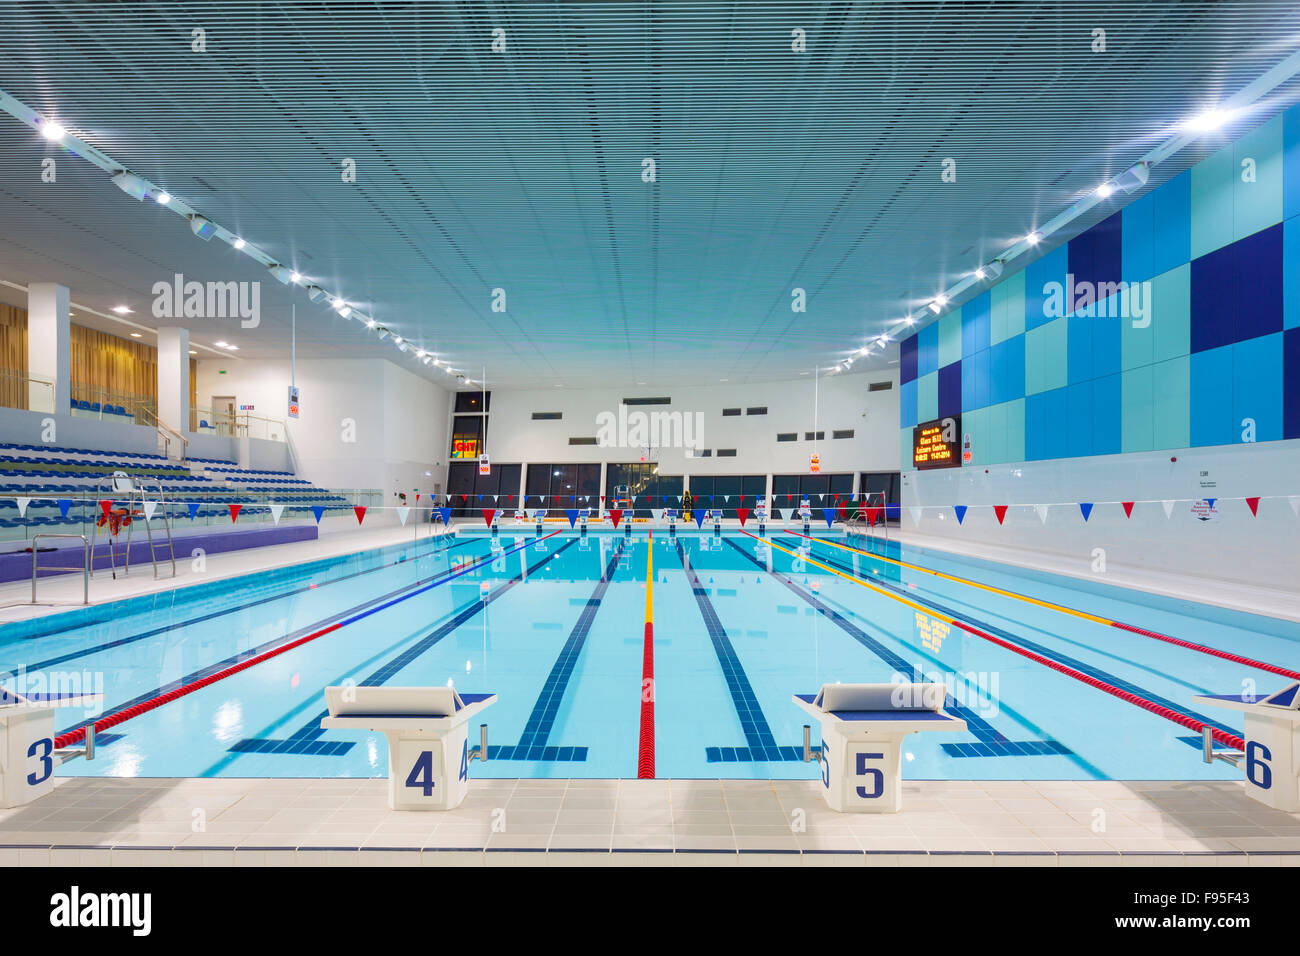 The Glass Mill Leisure Centre Is Situated On The Lowest Three Floors Stock Photo Royalty Free